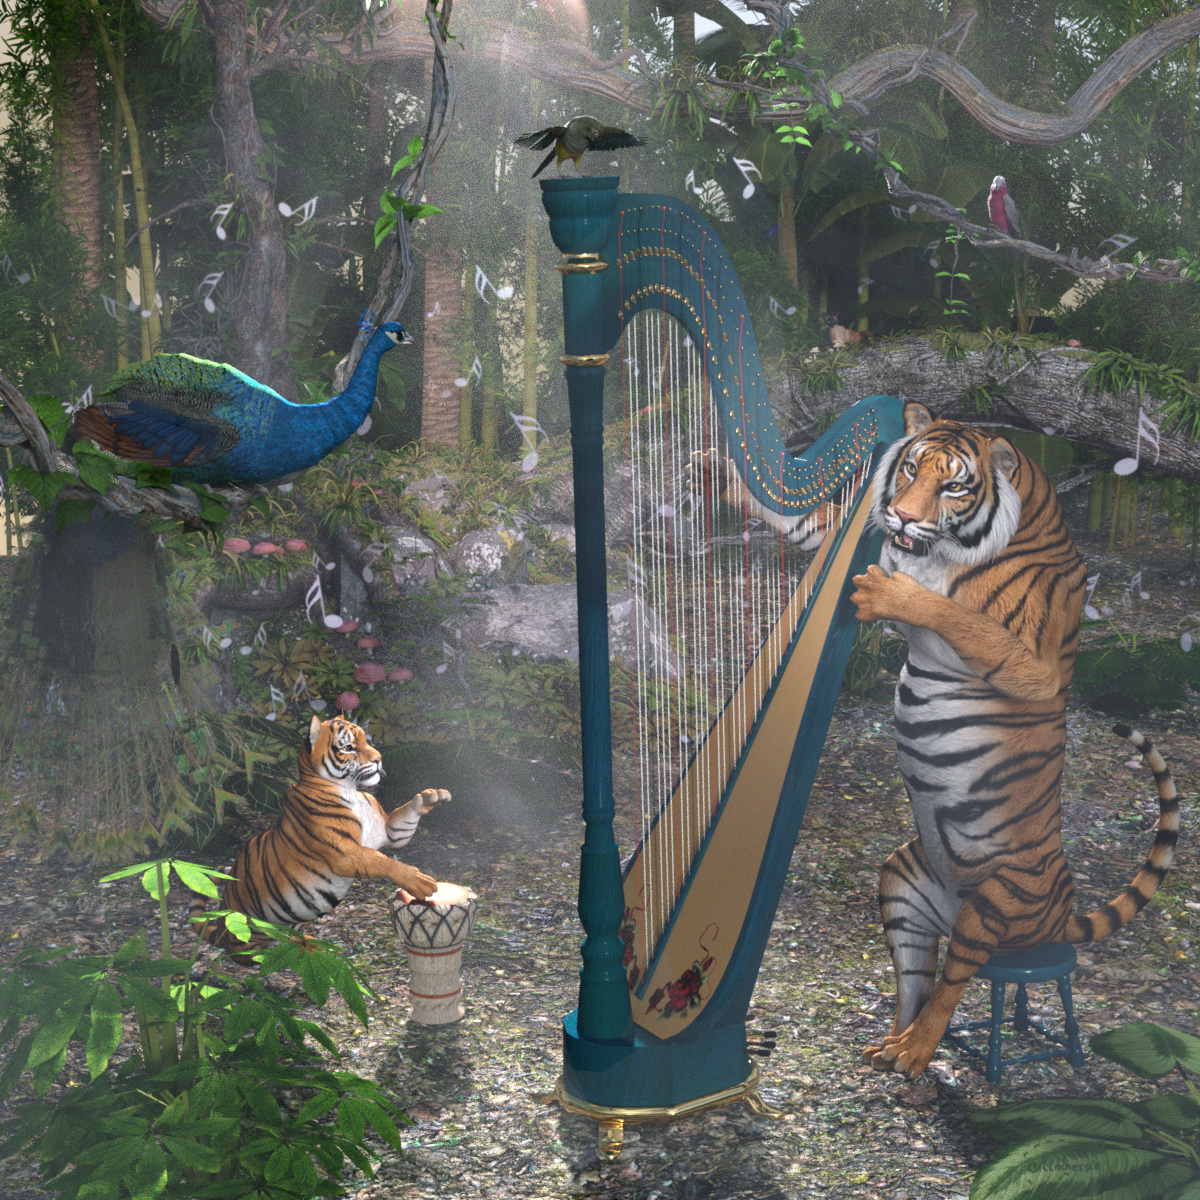 Concert in the jungle by mininessie